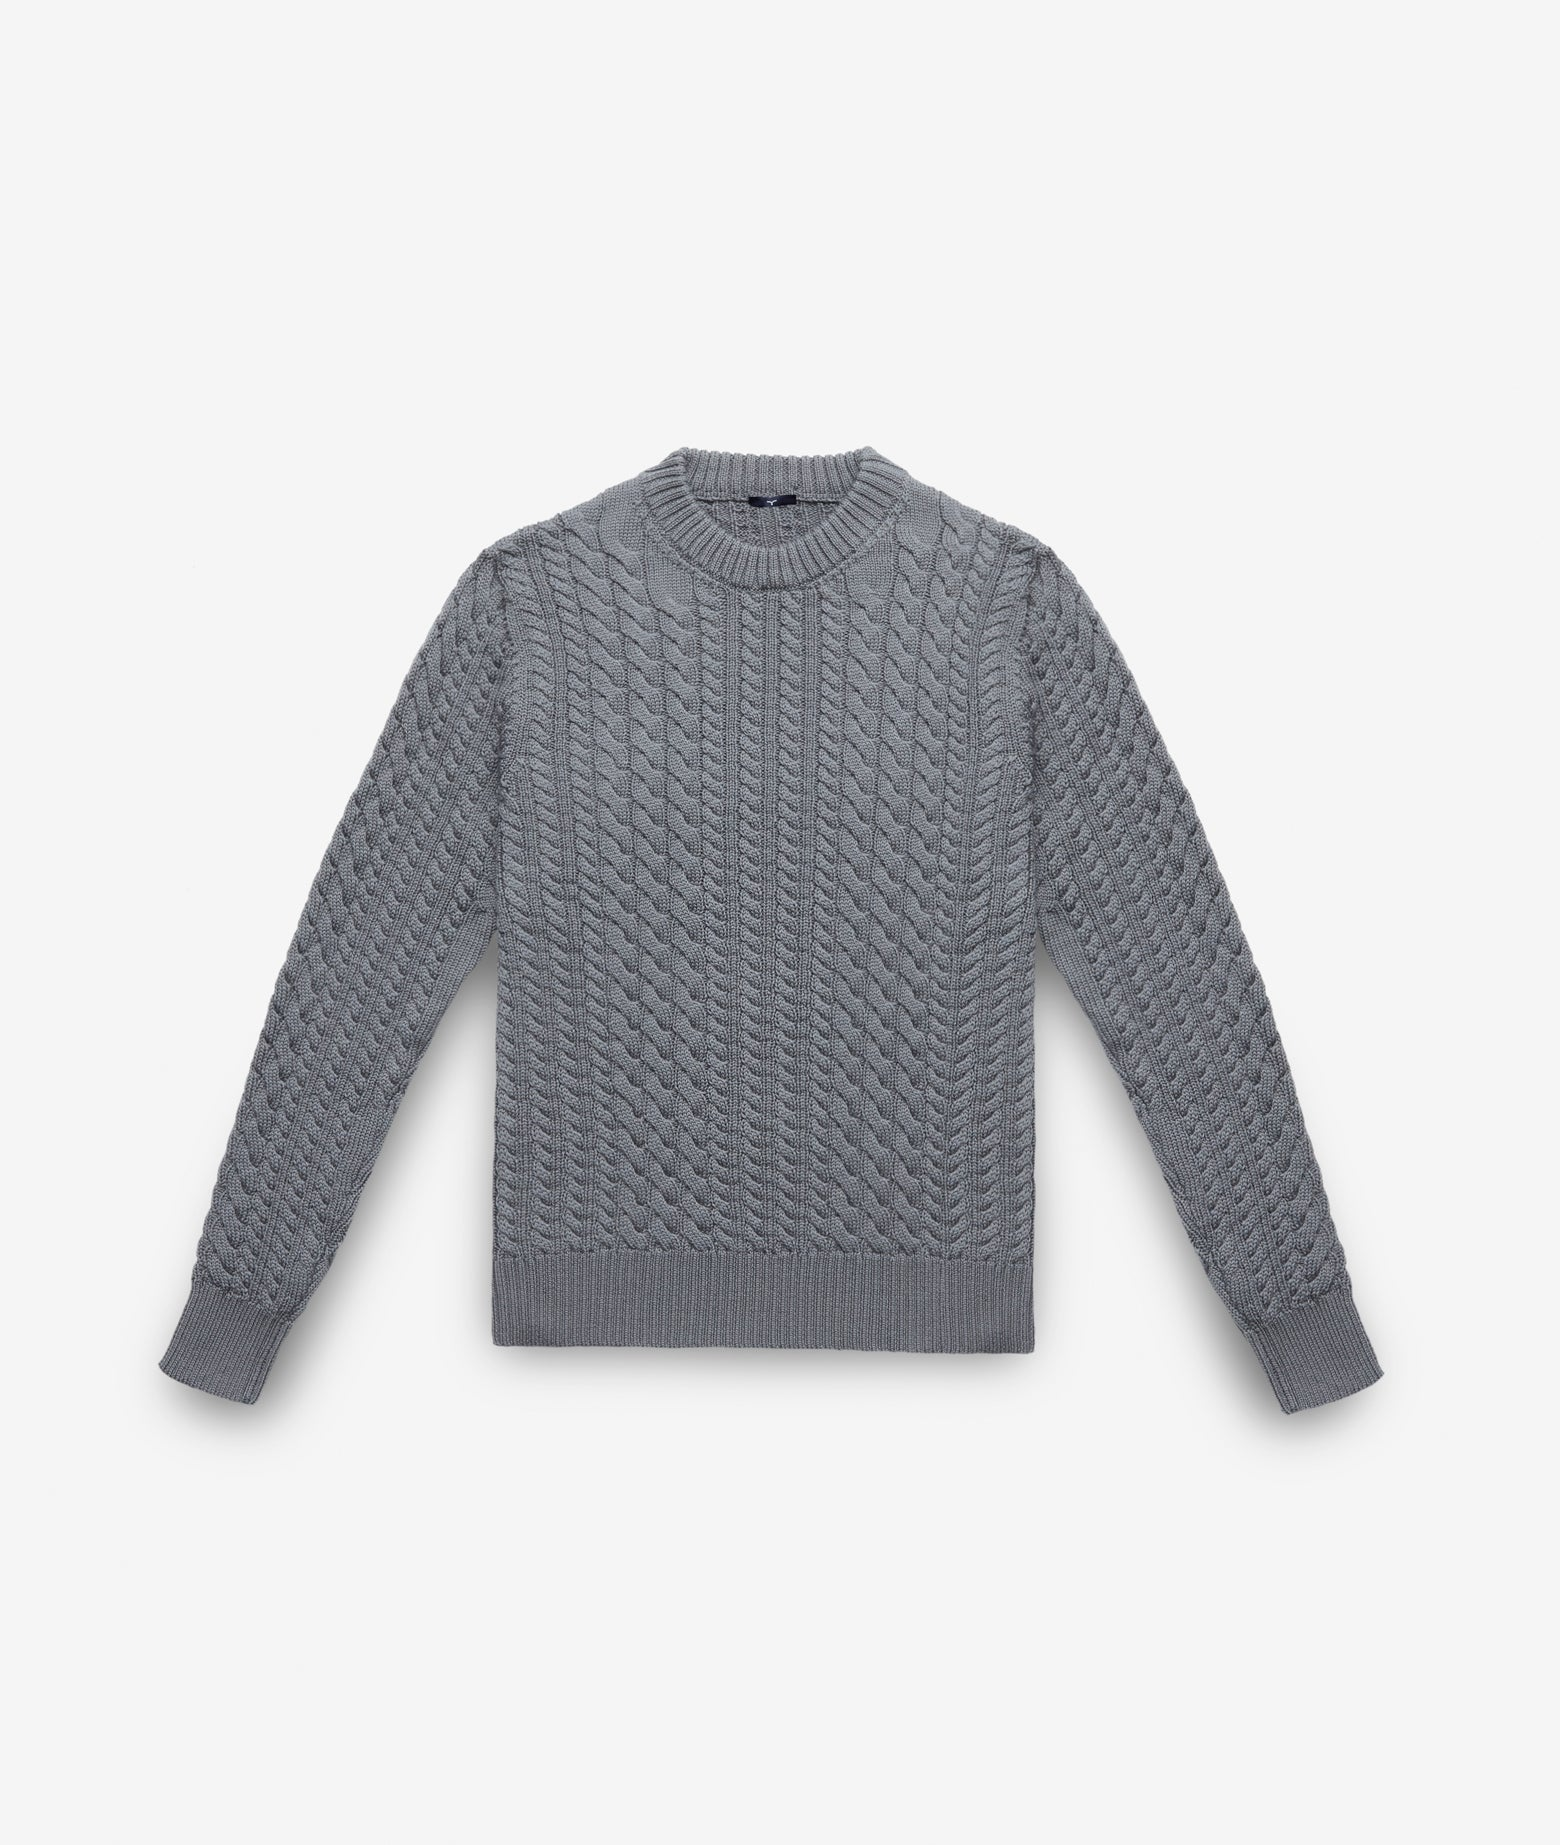 "Cashmere Cable Knit Sweater ""Col du Pillon"""